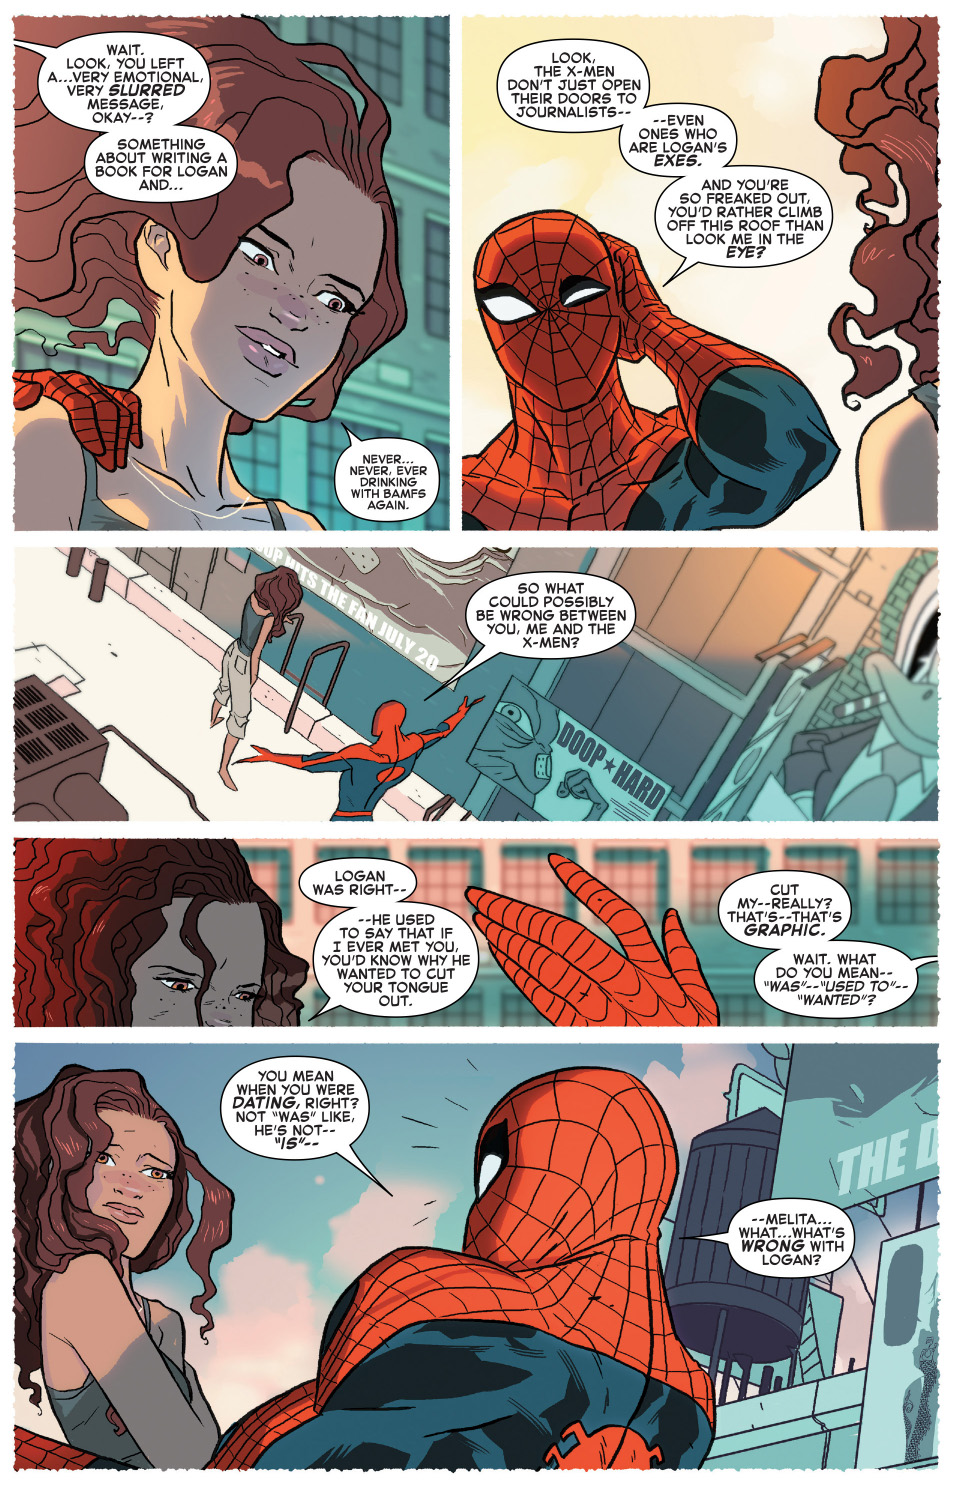 spider-man learns of wolverine's death